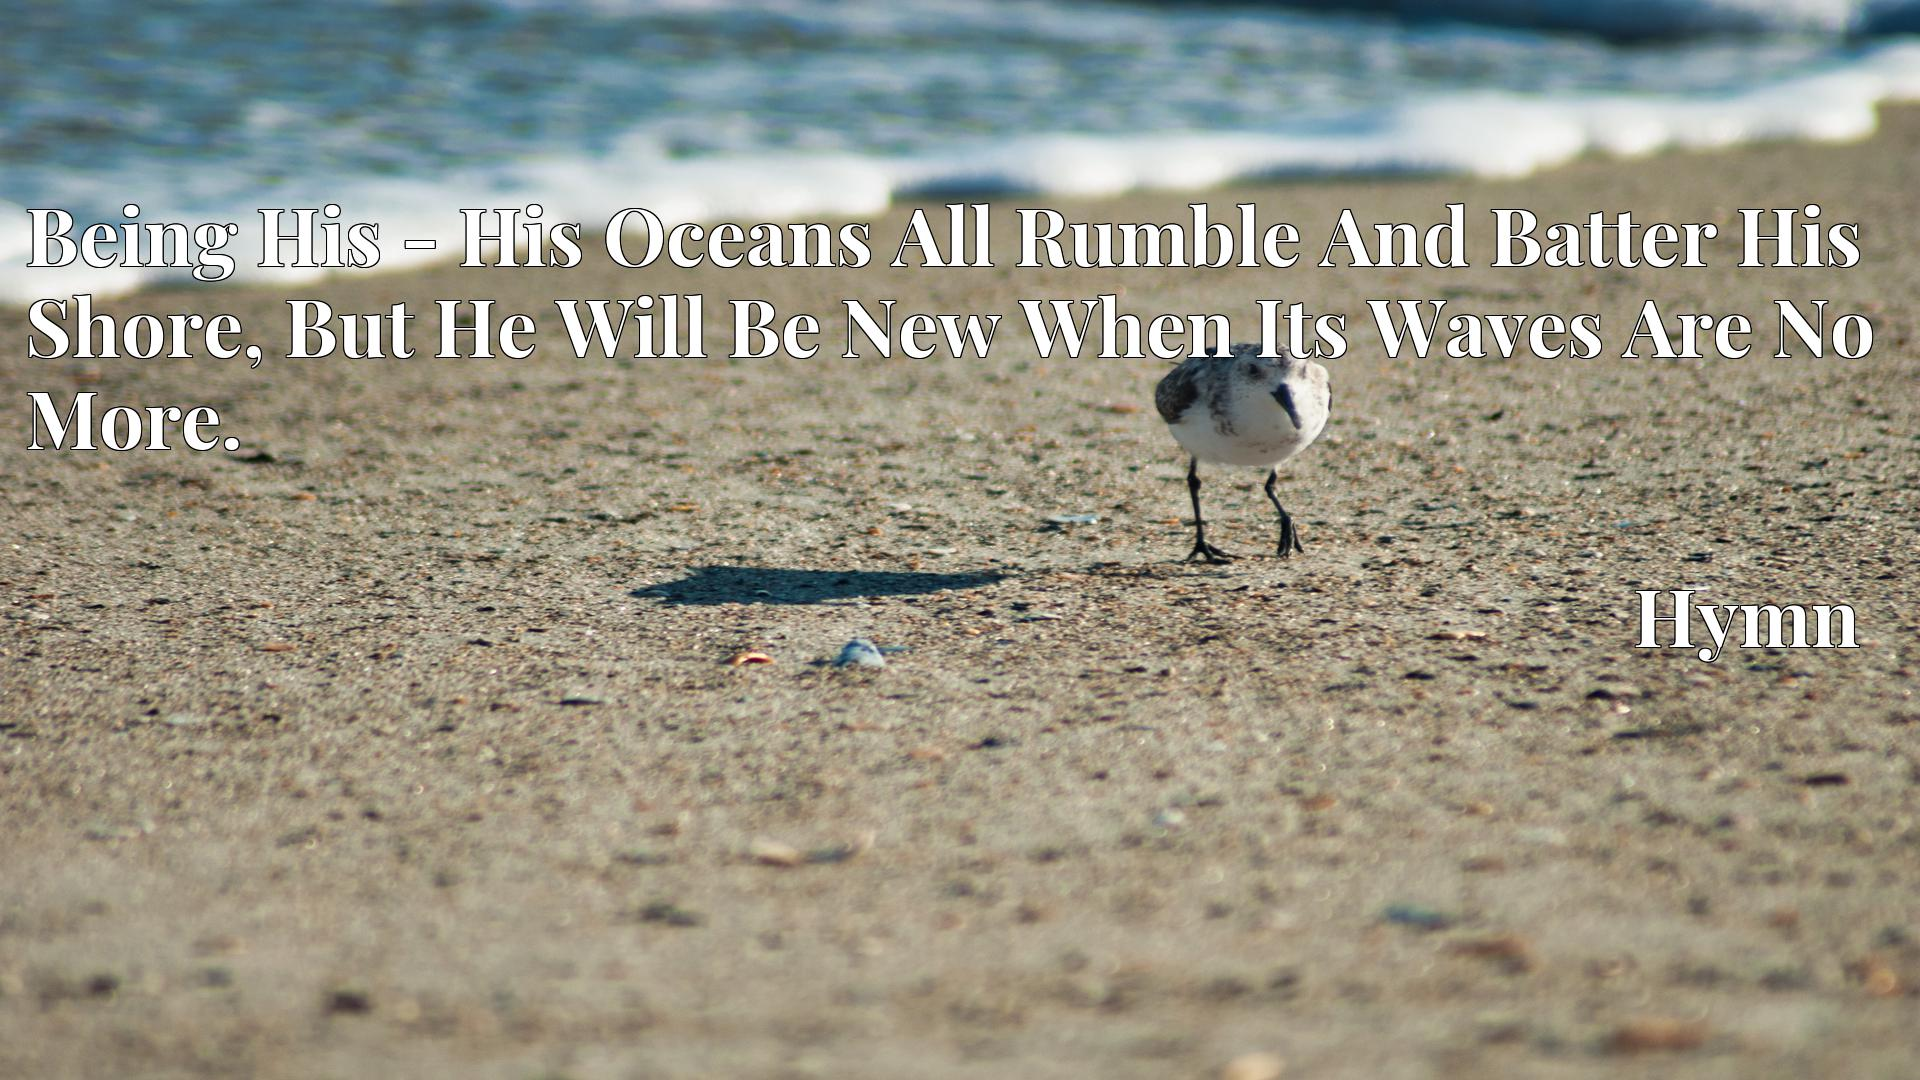 Being His - His Oceans All Rumble And Batter His Shore, But He Will Be New When Its Waves Are No More. Hymn